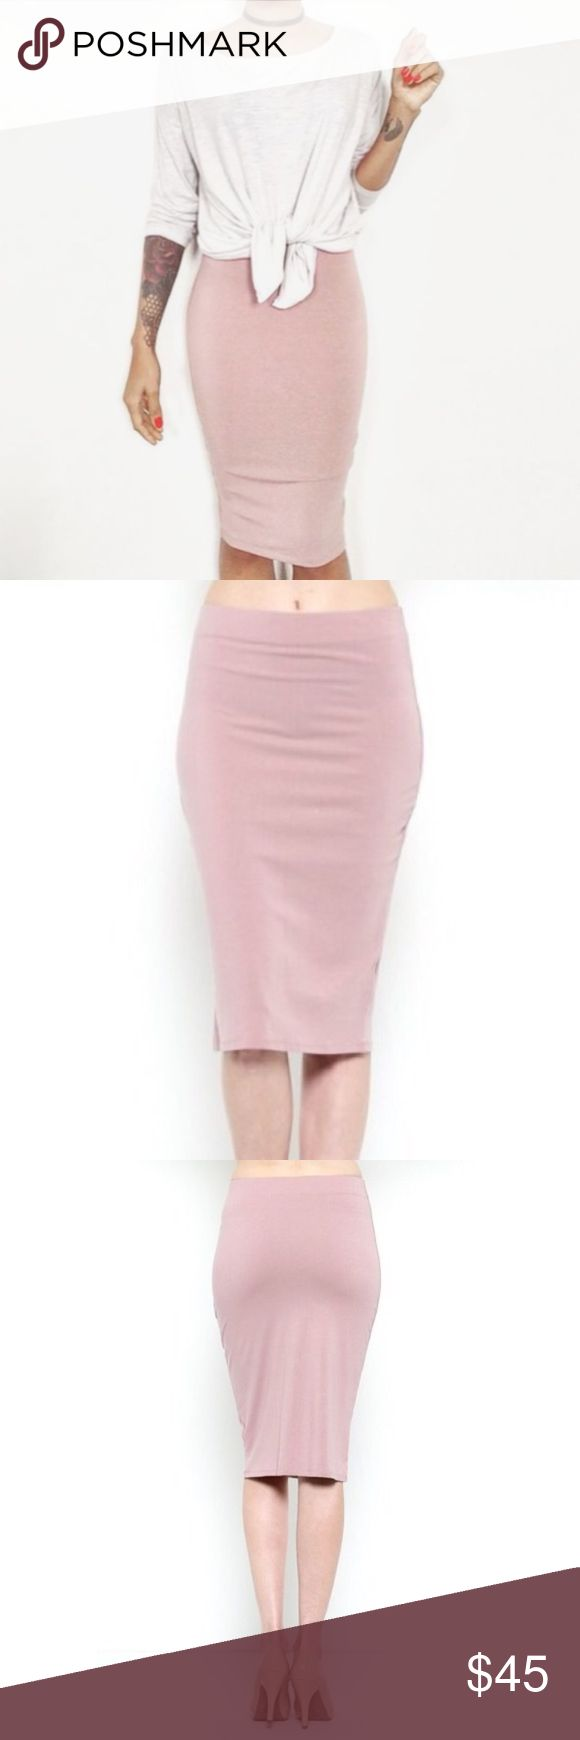 IN STOCK! Dusty Pink Fitted Midi Skirt Dusty mauve solid fitted midi skirt with elastic band waist! Rayon spandex blend.  Thank you for shopping with me! If you have questions, don't be afraid to ask! Skirts Midi